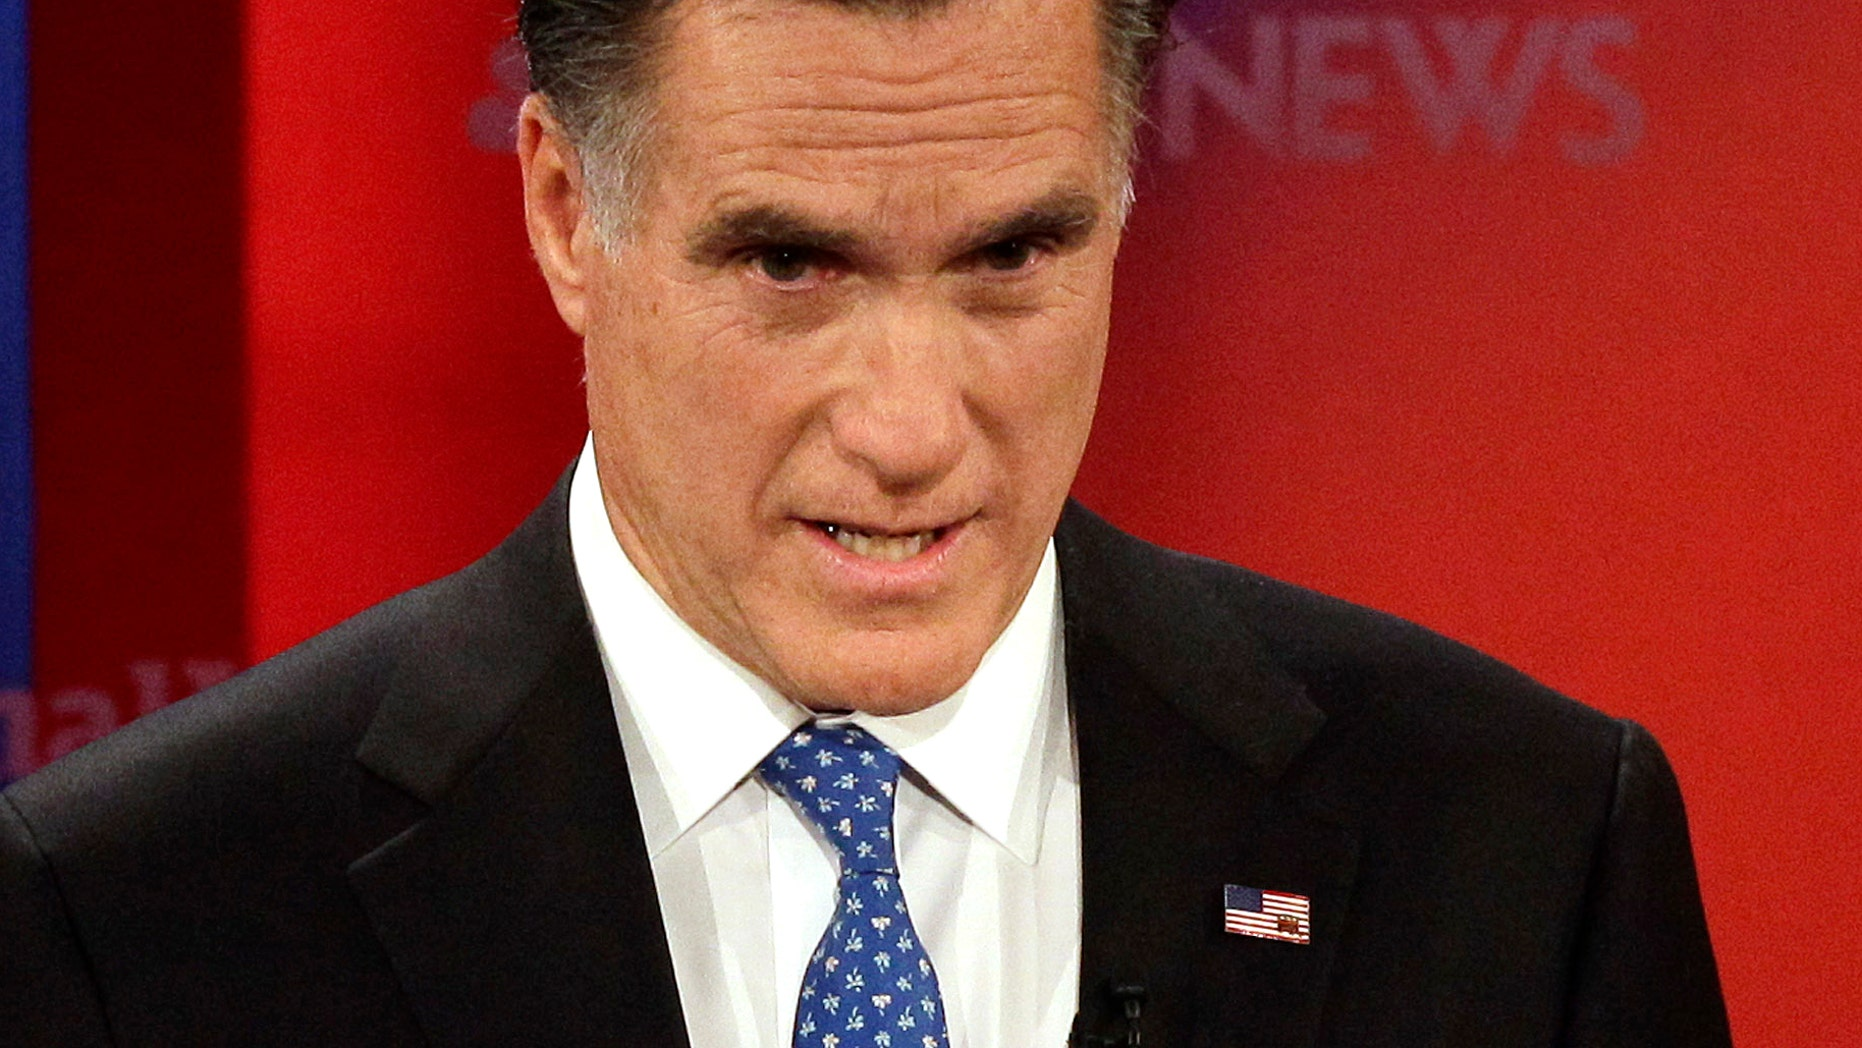 Republican presidential candidate former Massachusetts Gov. Mitt Romney gestures during a Republican presidential debate Monday Jan. 23, 2012, at the University of South Florida in Tampa, Fla. (AP Photo/Paul Sancya)